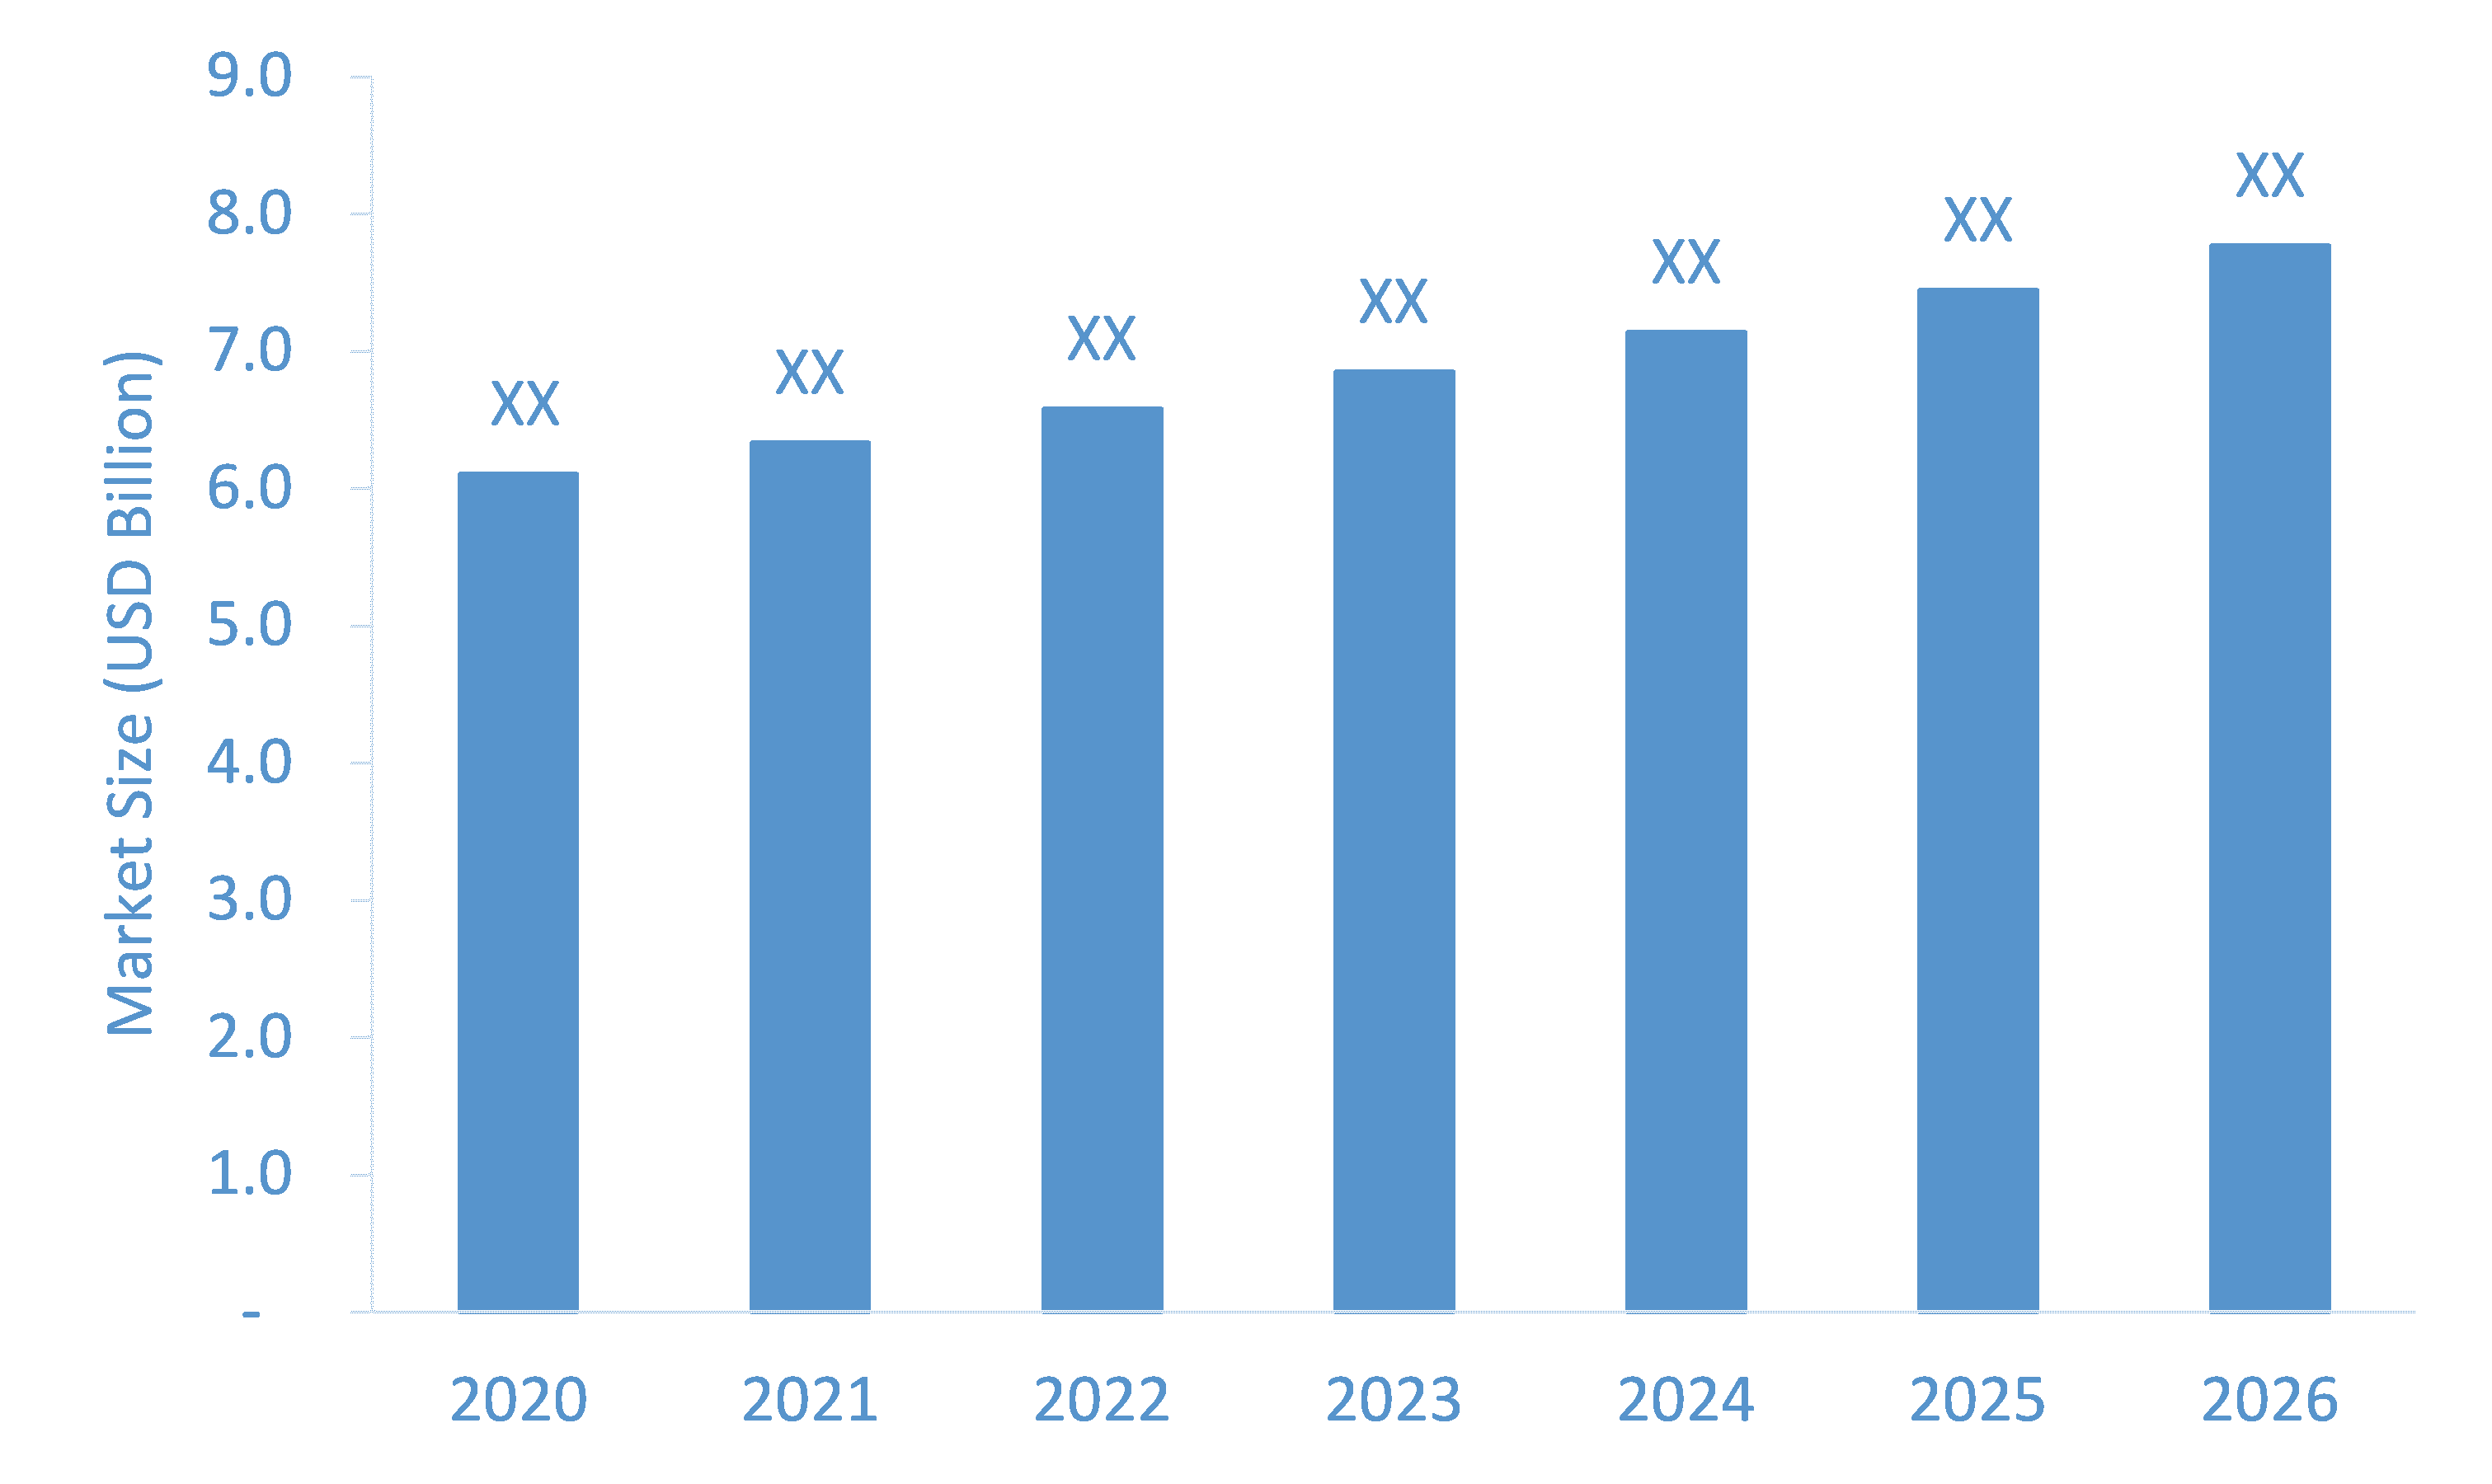 Thermostatic-Water-Heater-Market-Forecast